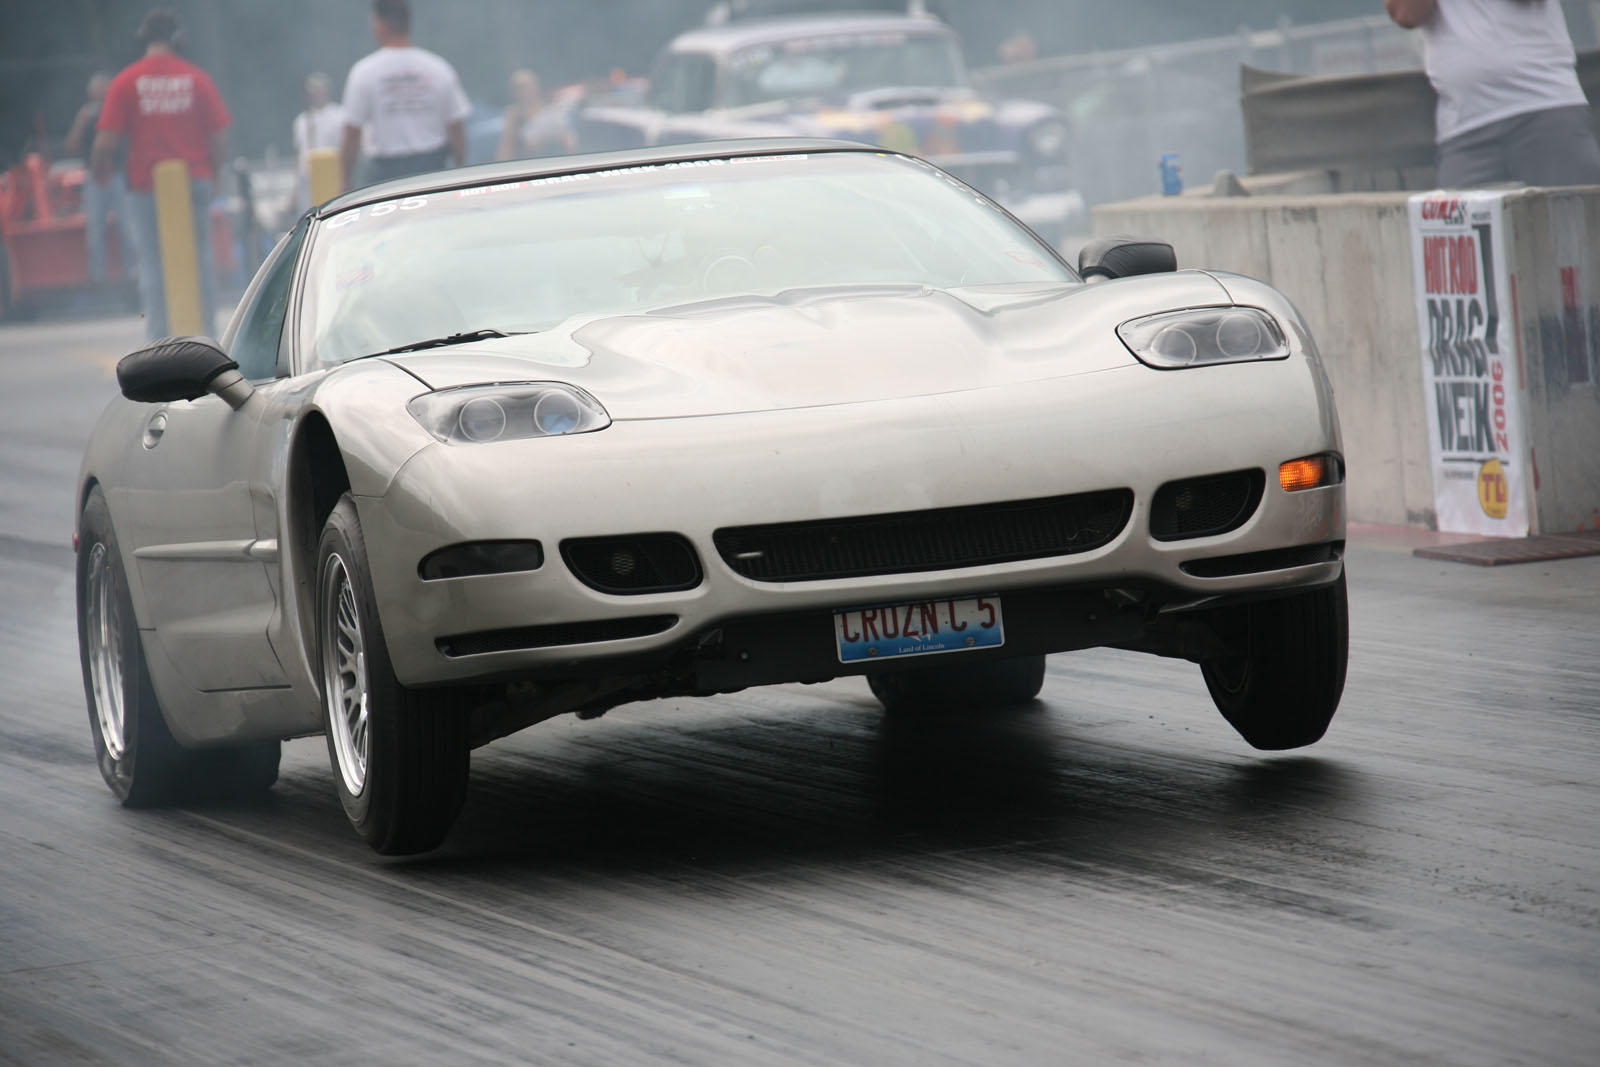 2000 Chevrolet Corvette Coupe 427 C5R